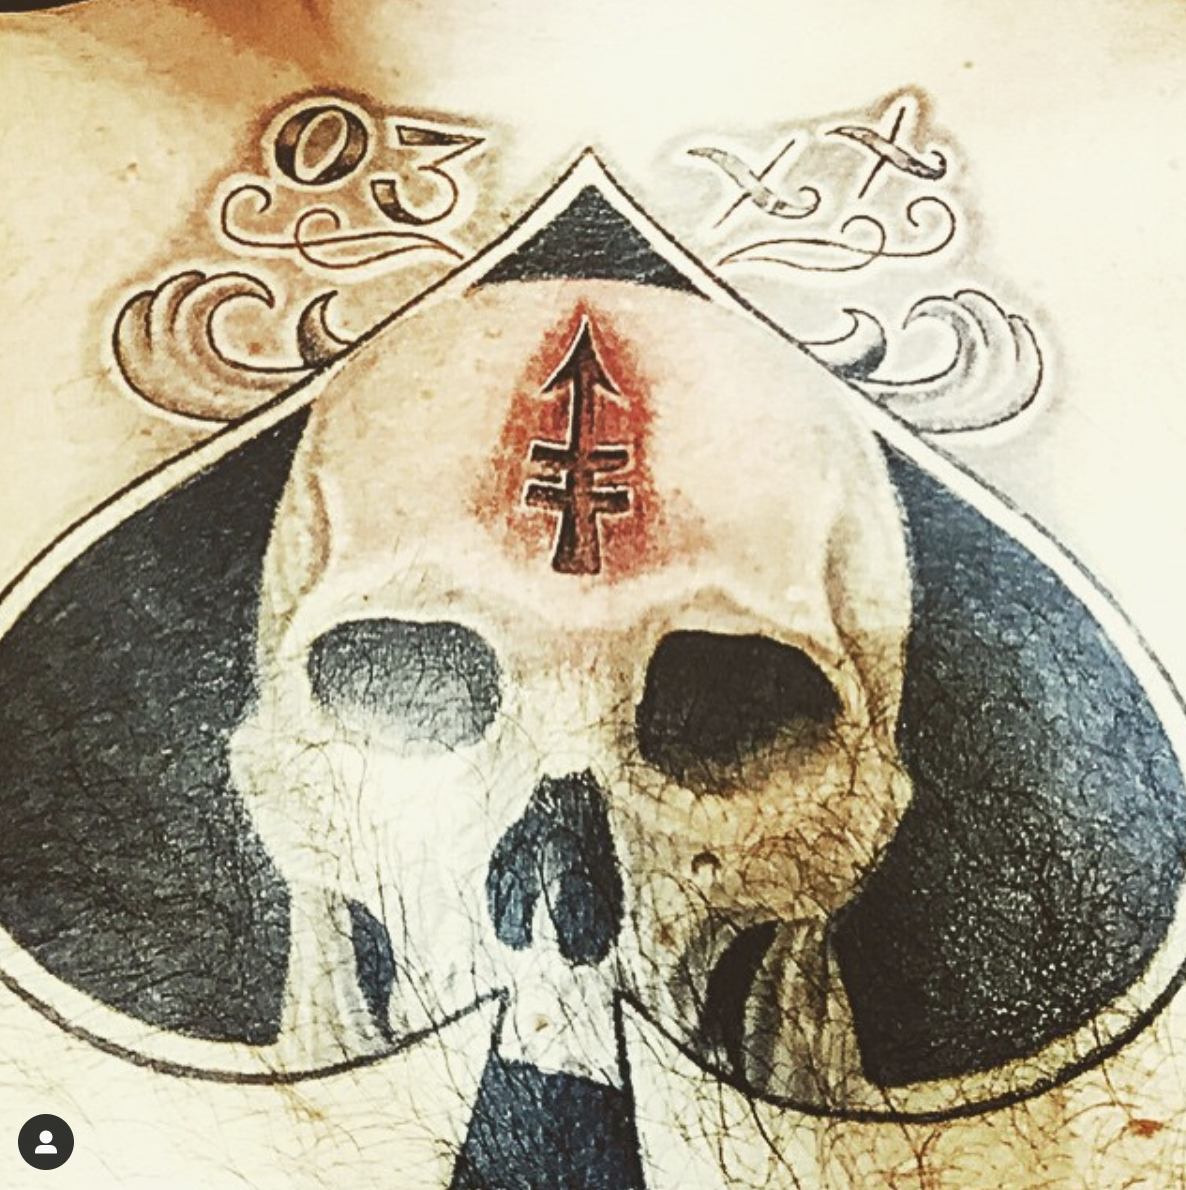 H&H Vegas client Larry B's machine gunner symbol tattoo